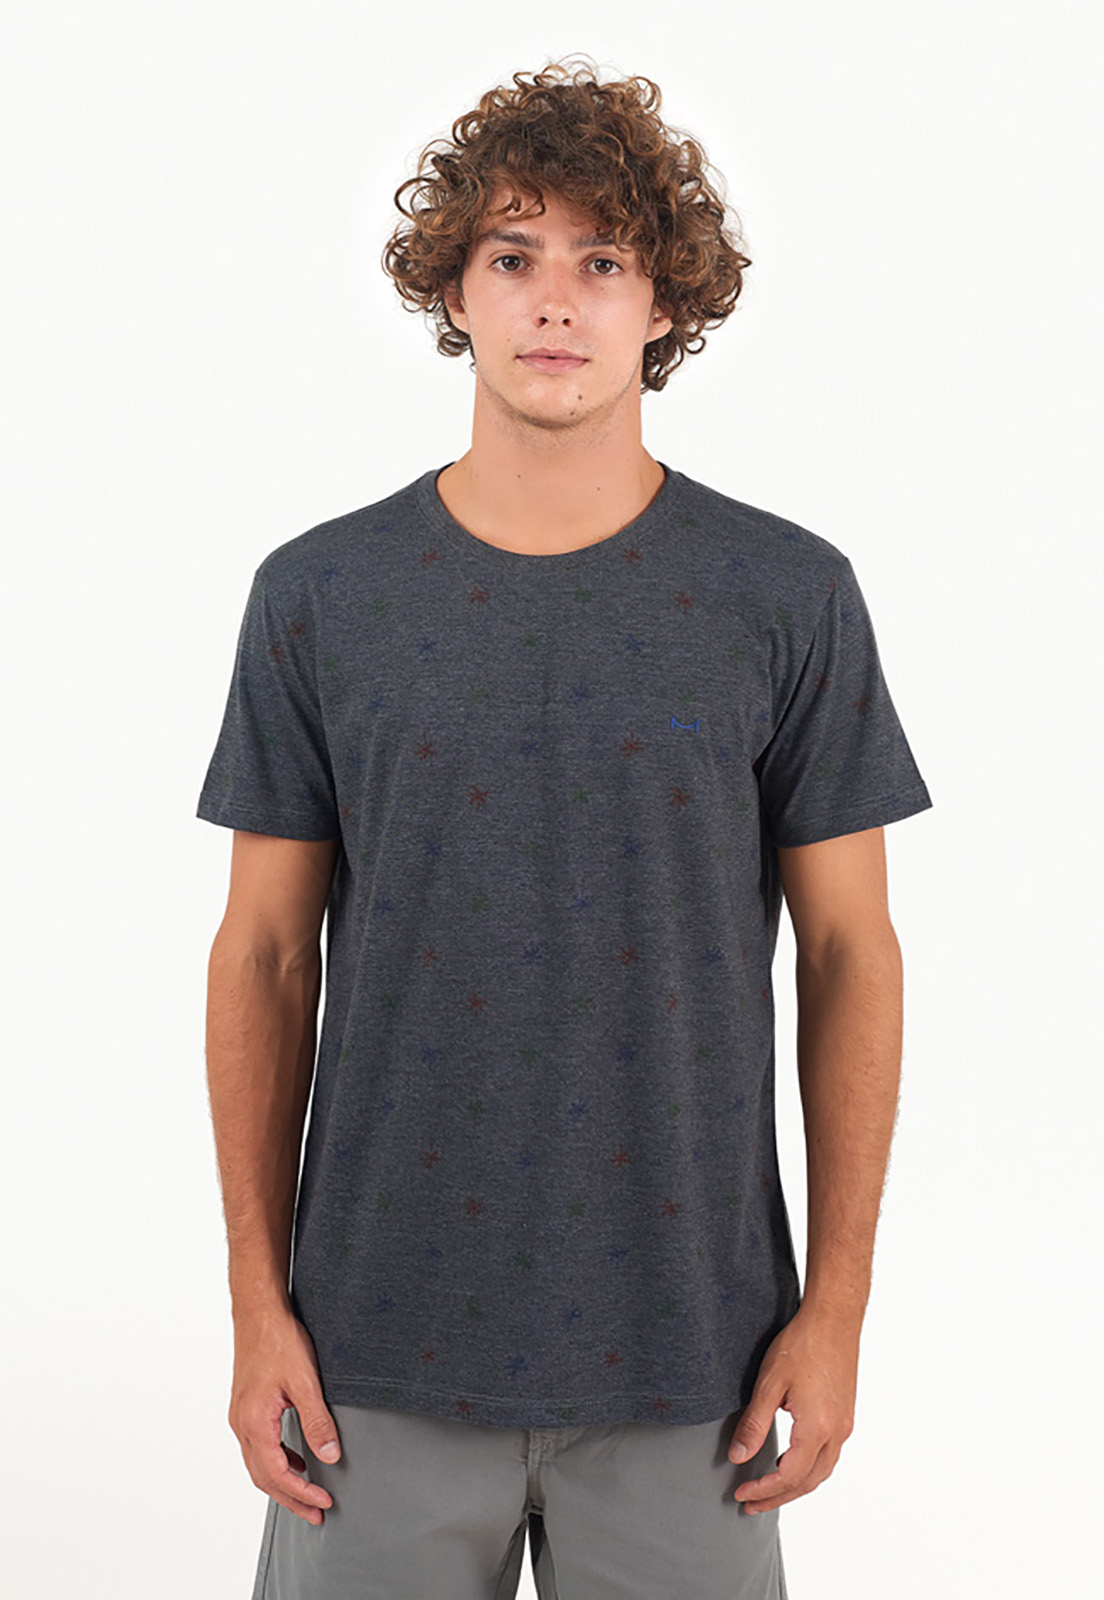 T-shirt Coqueiros melty  - melty surf & Co.